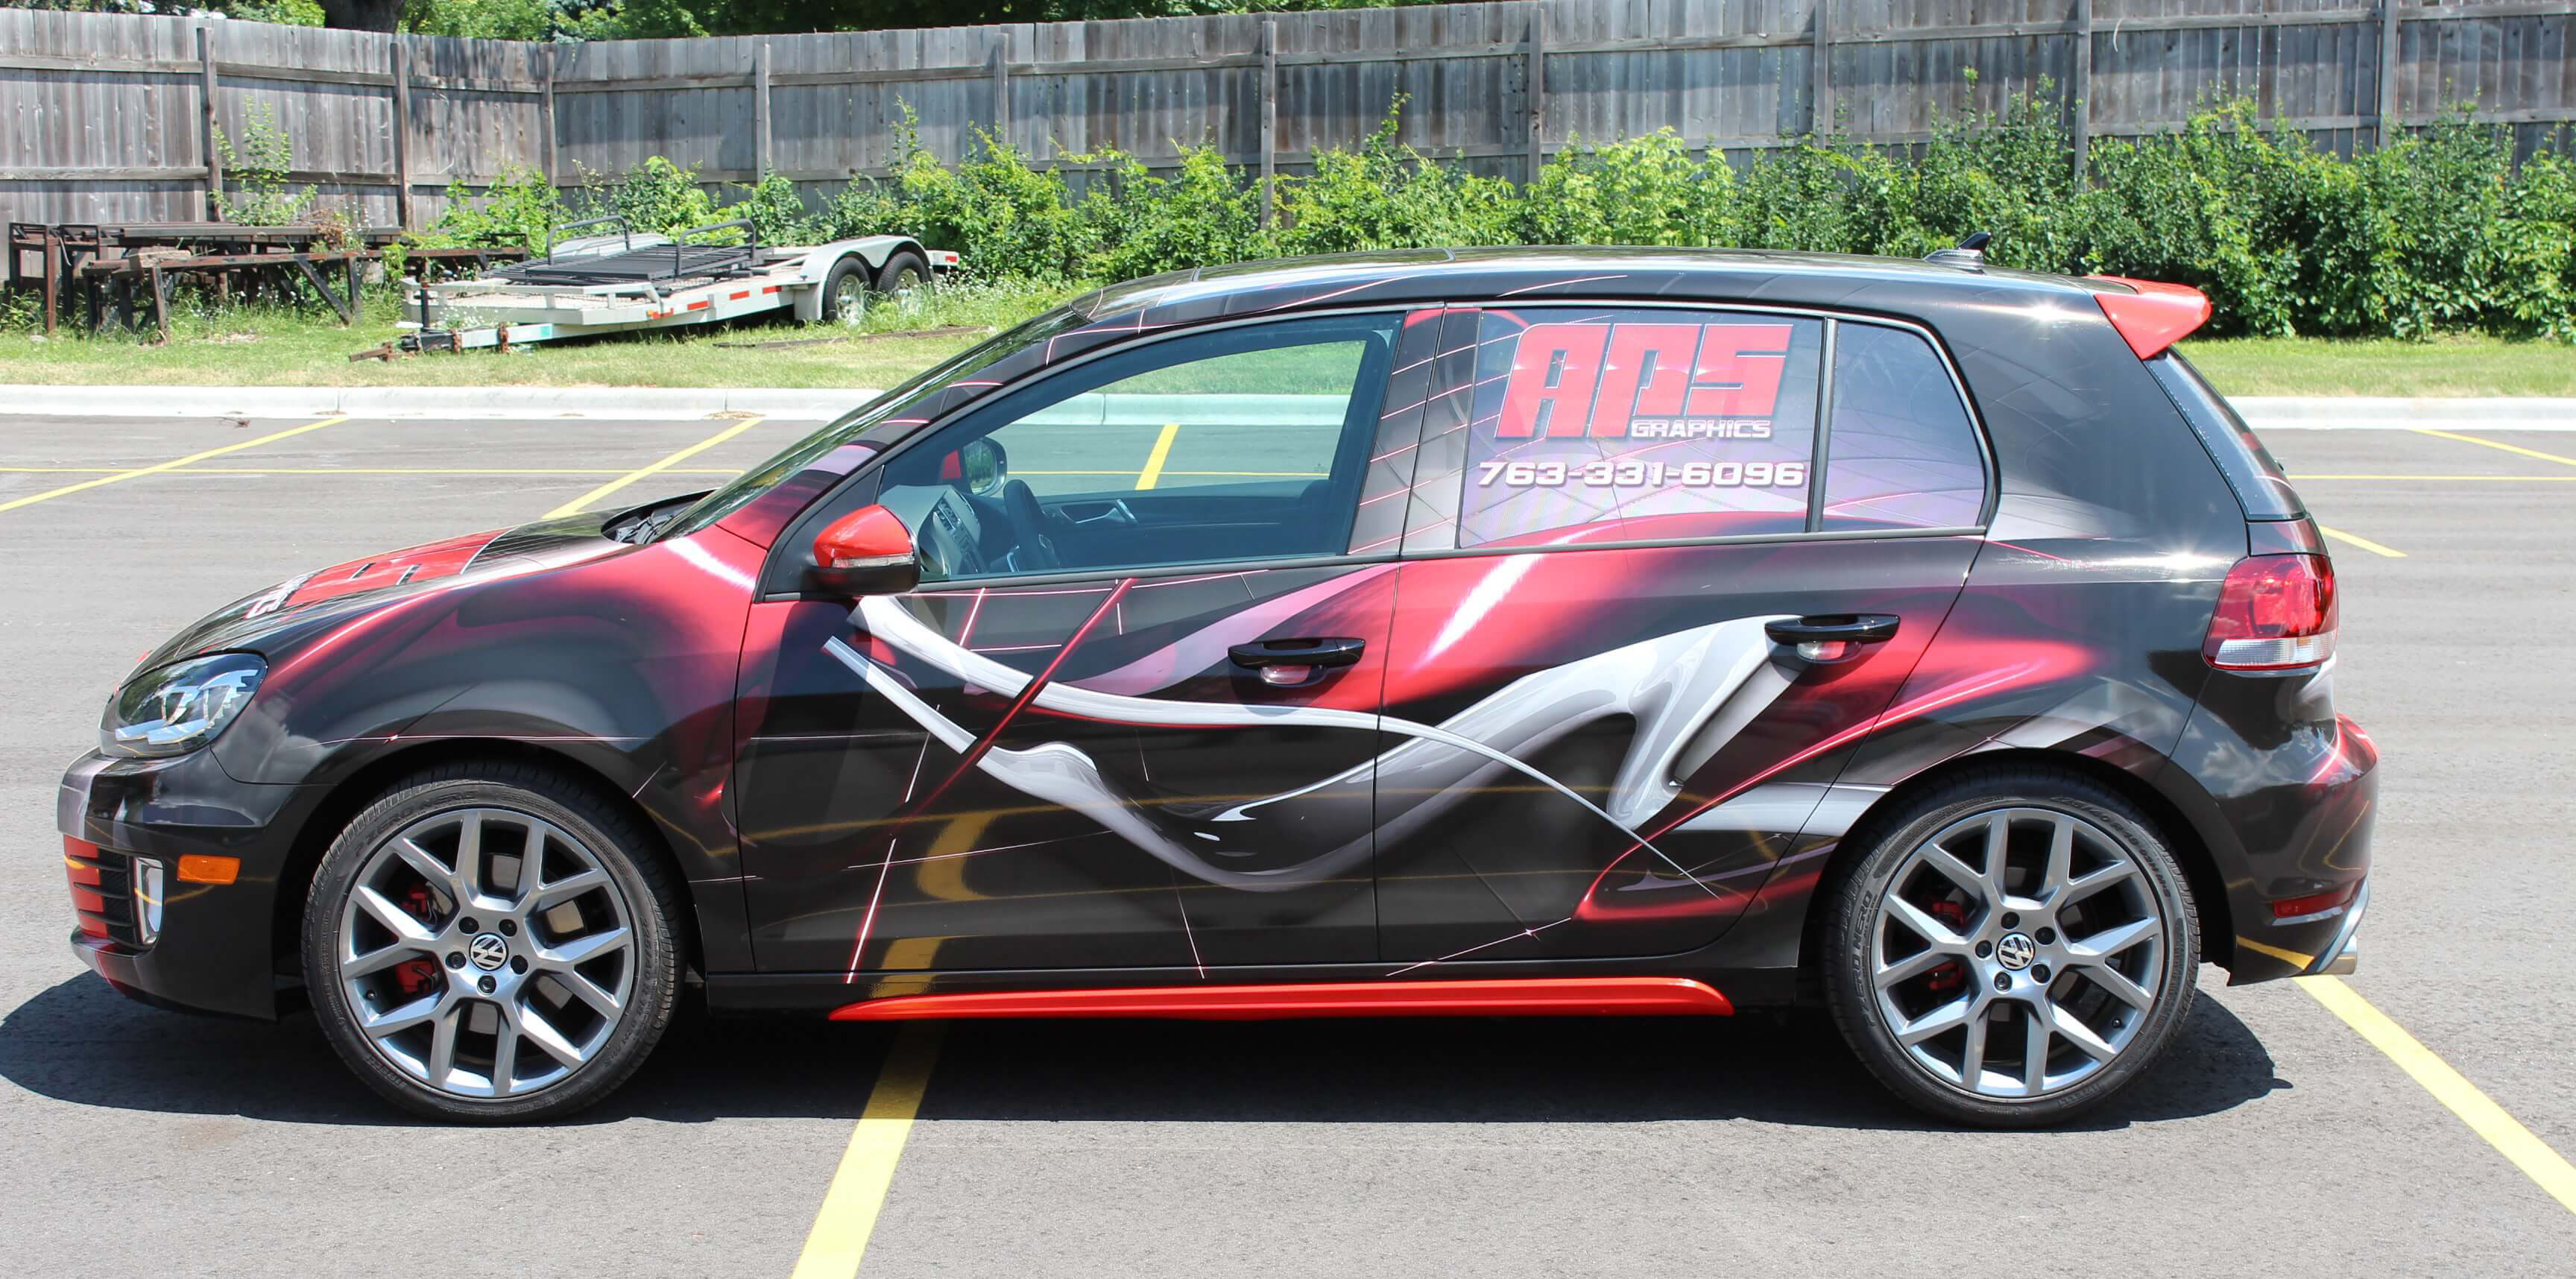 APS Vehicle Vinyl Wrap